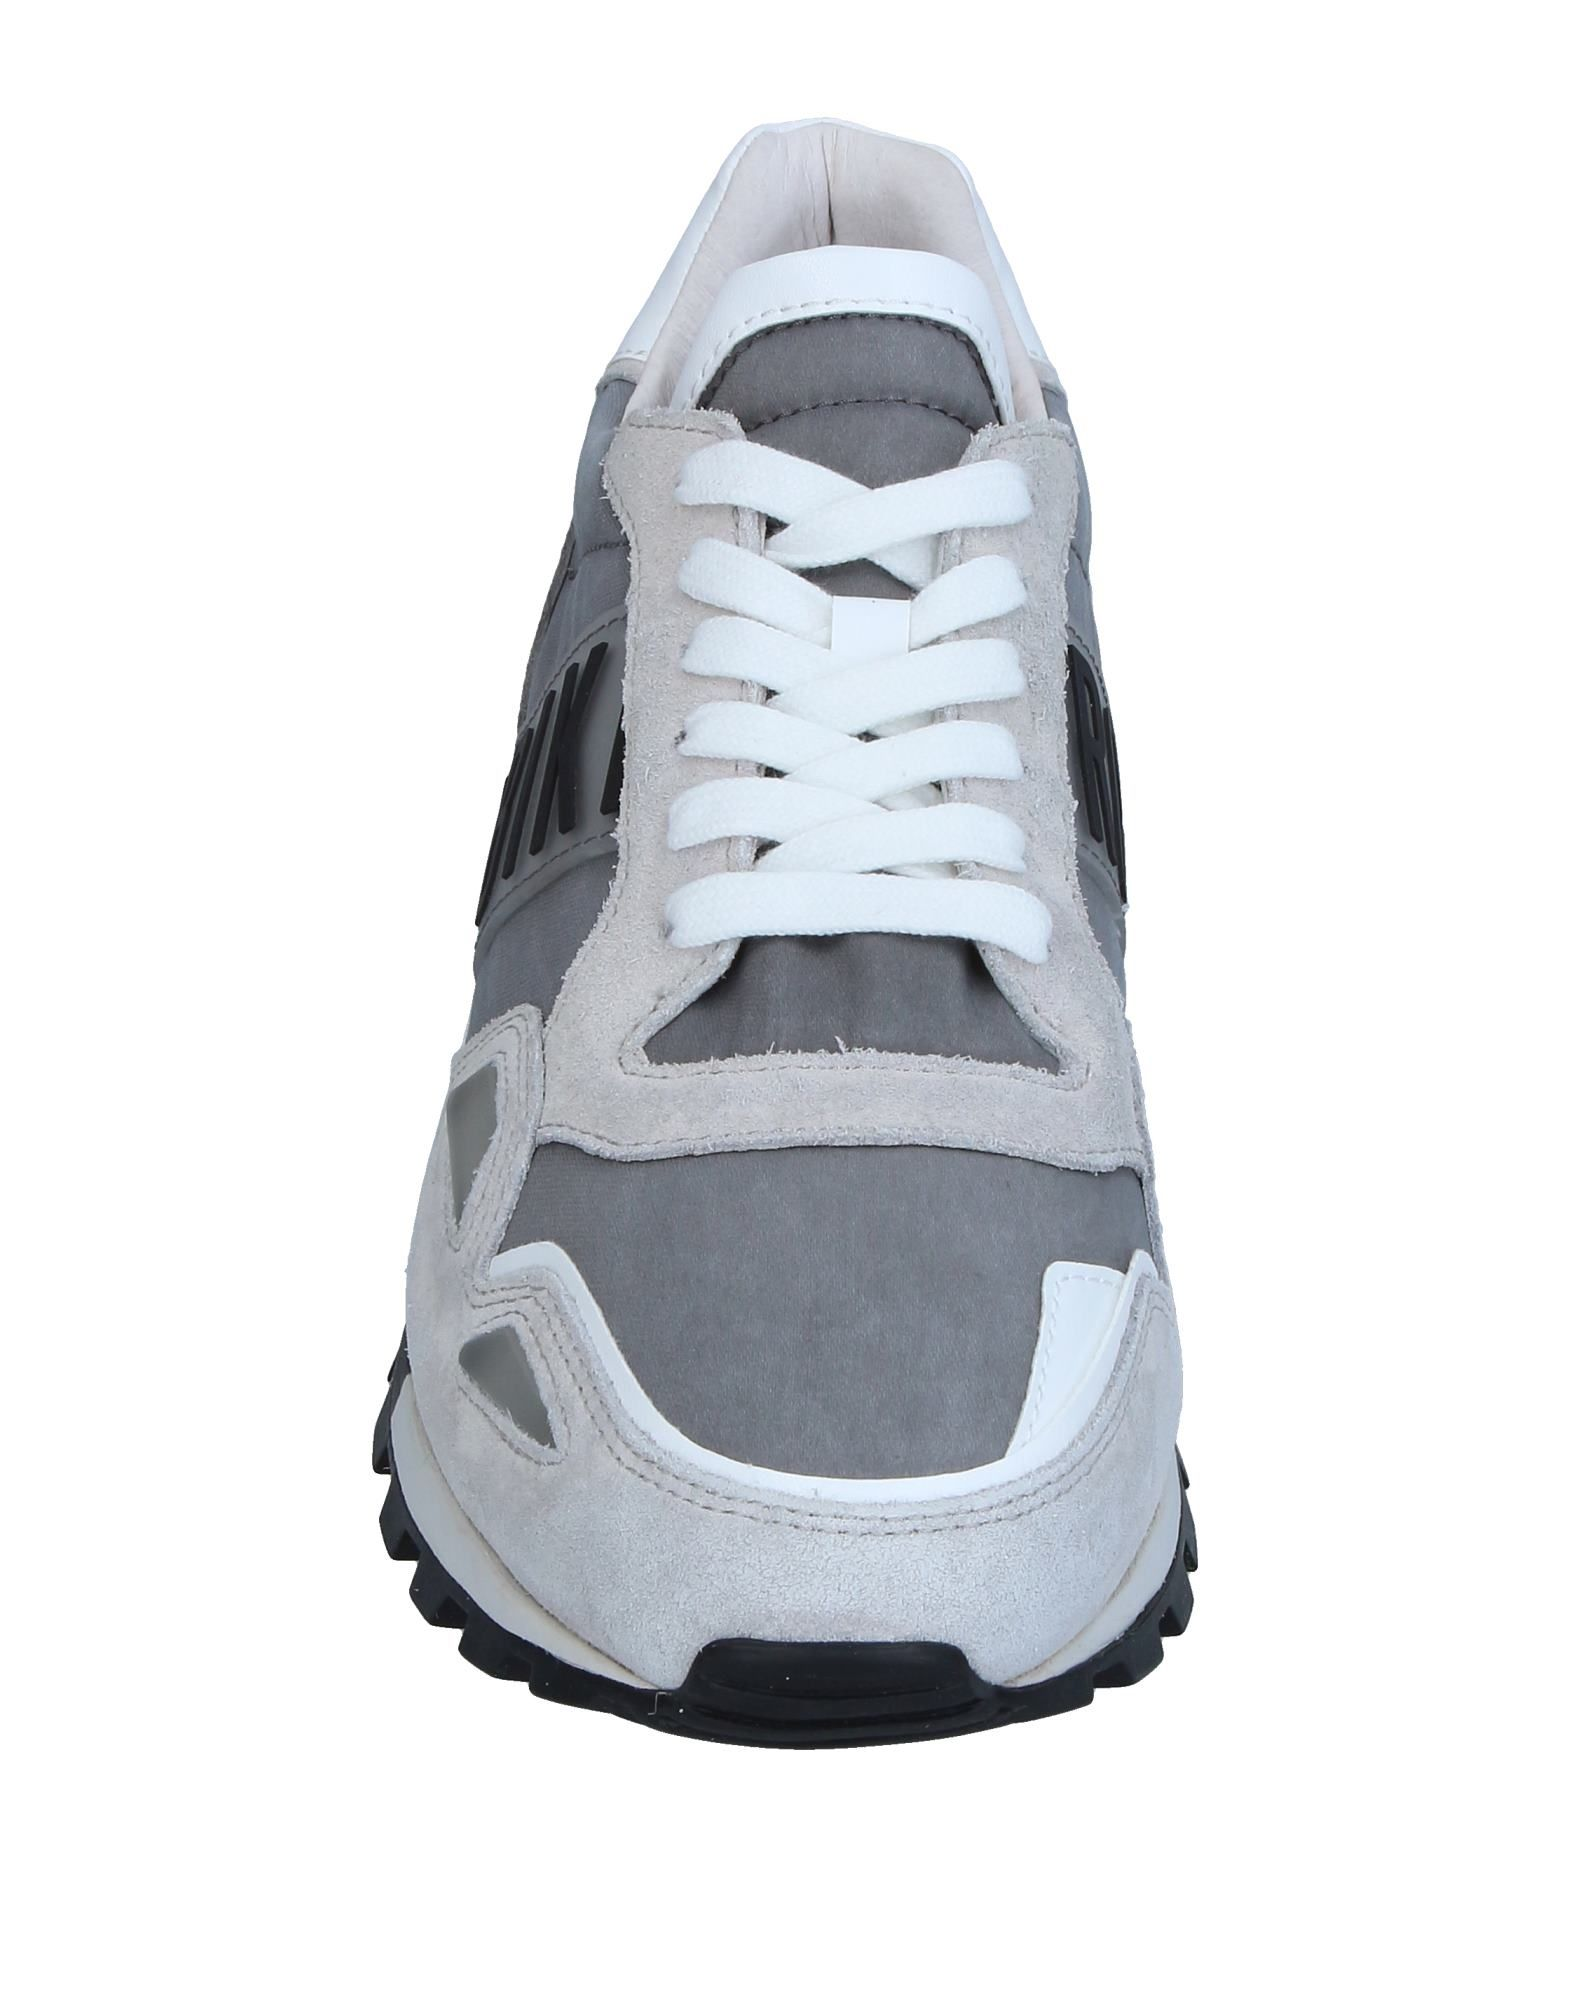 Bikkembergs Sneakers - Men Bikkembergs Sneakers online on    Canada - 11333608SR b4b8cf